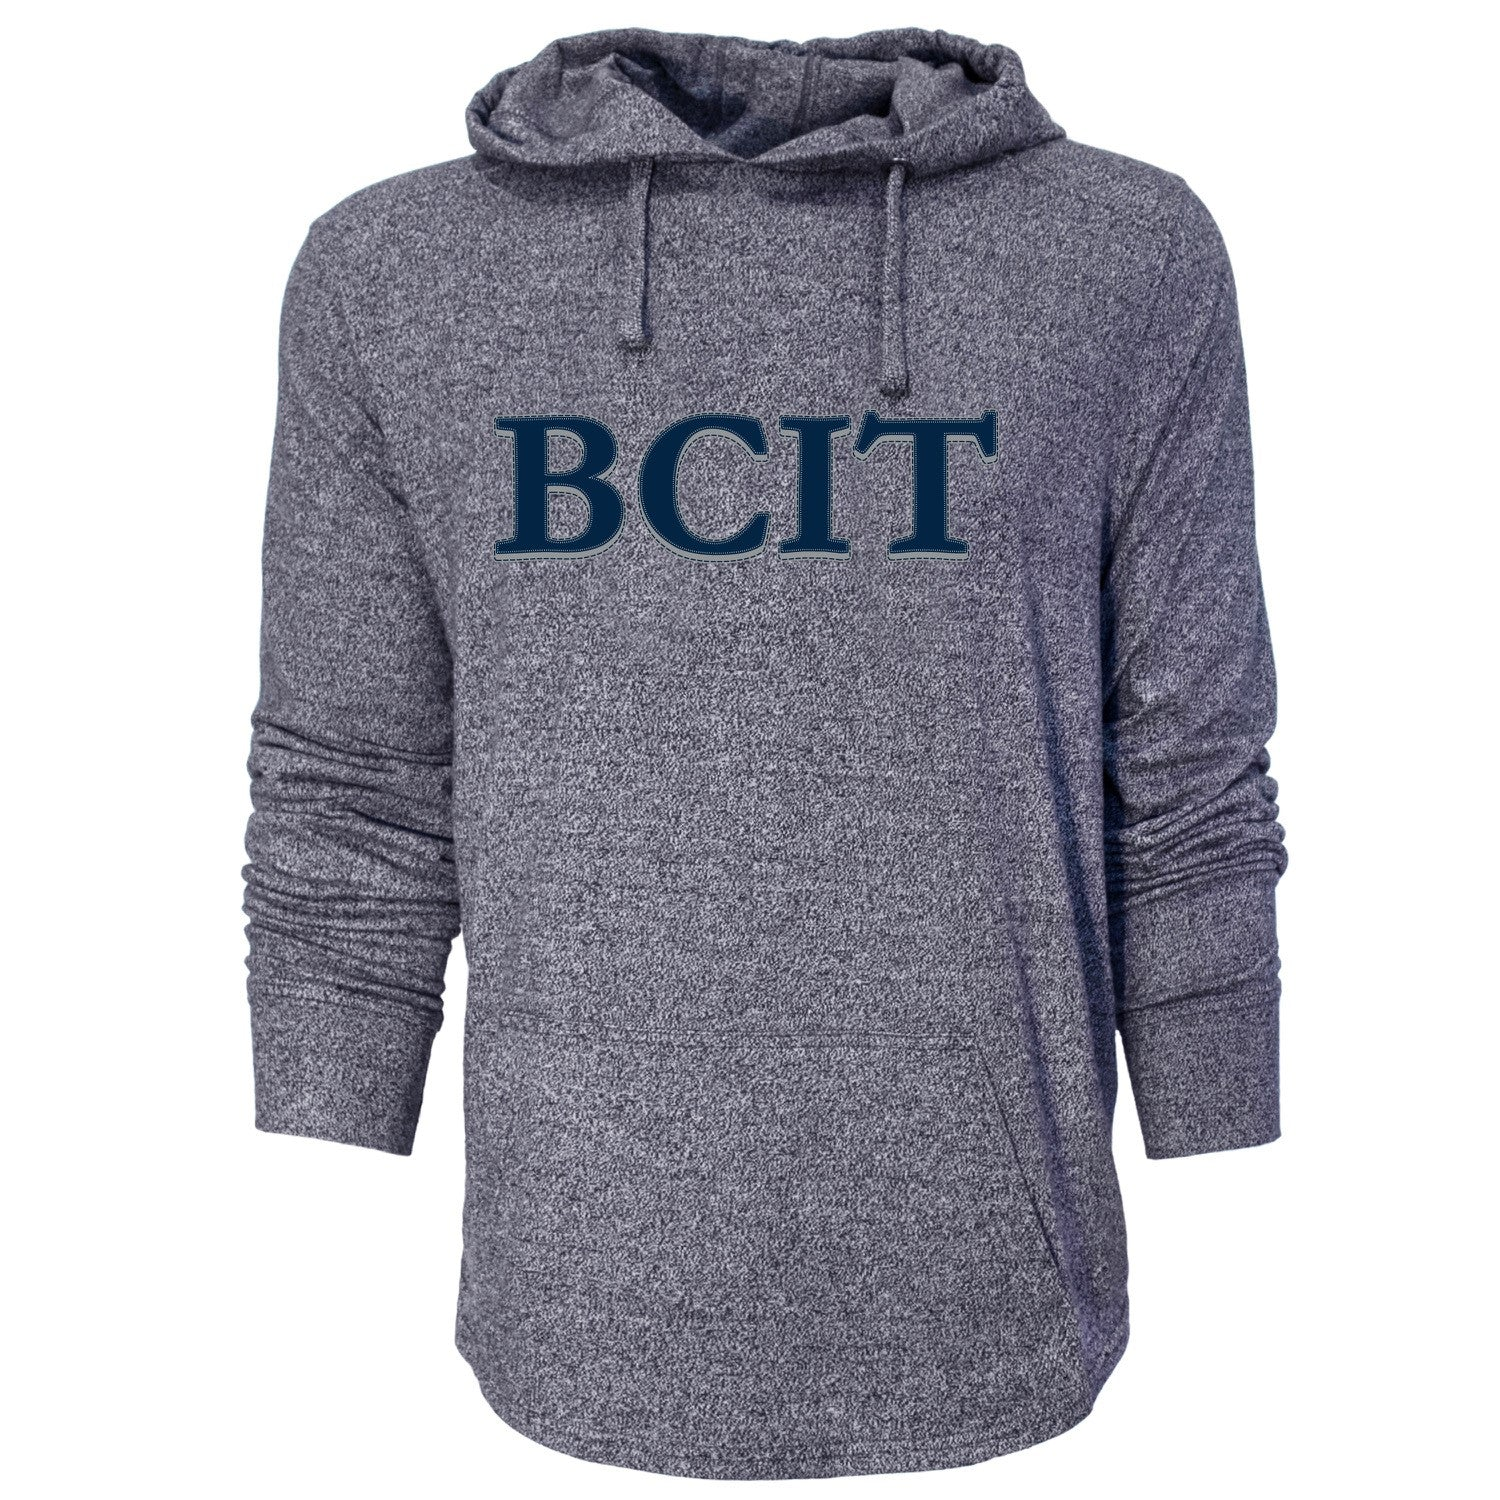 SALE 25% off  BCIT Twisted Yarn Hoodie